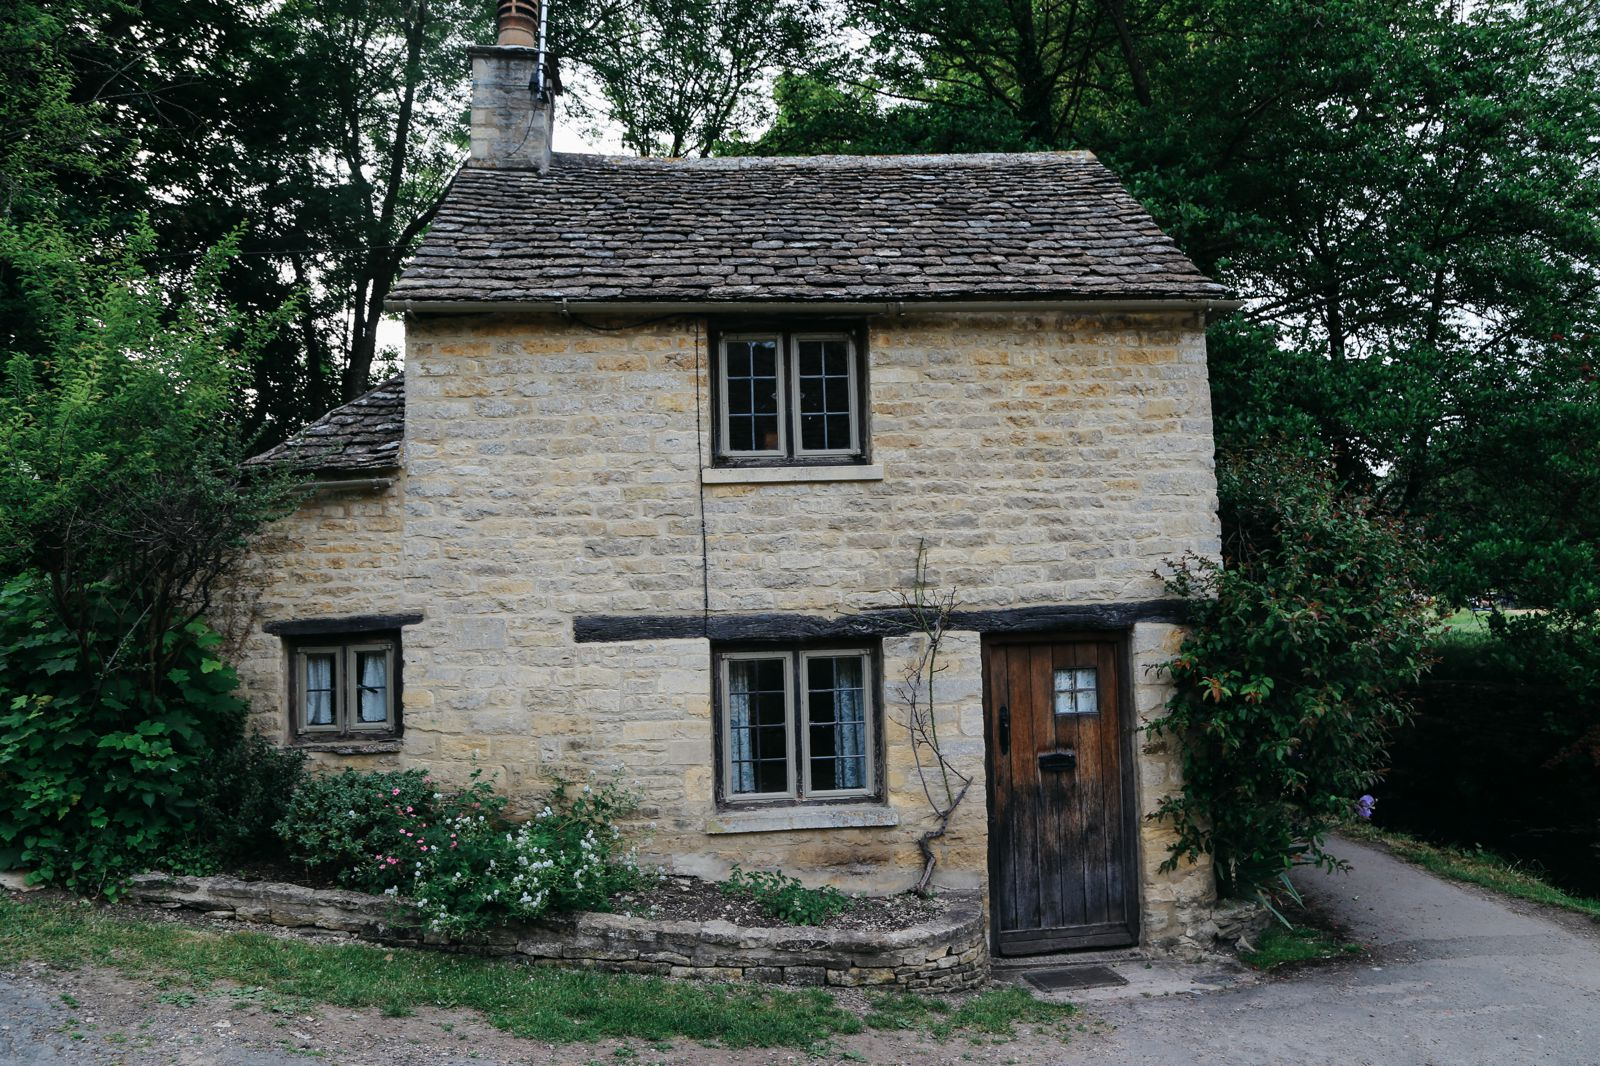 In Search Of The Most Beautiful Street In England - Arlington Row, Bibury (22)